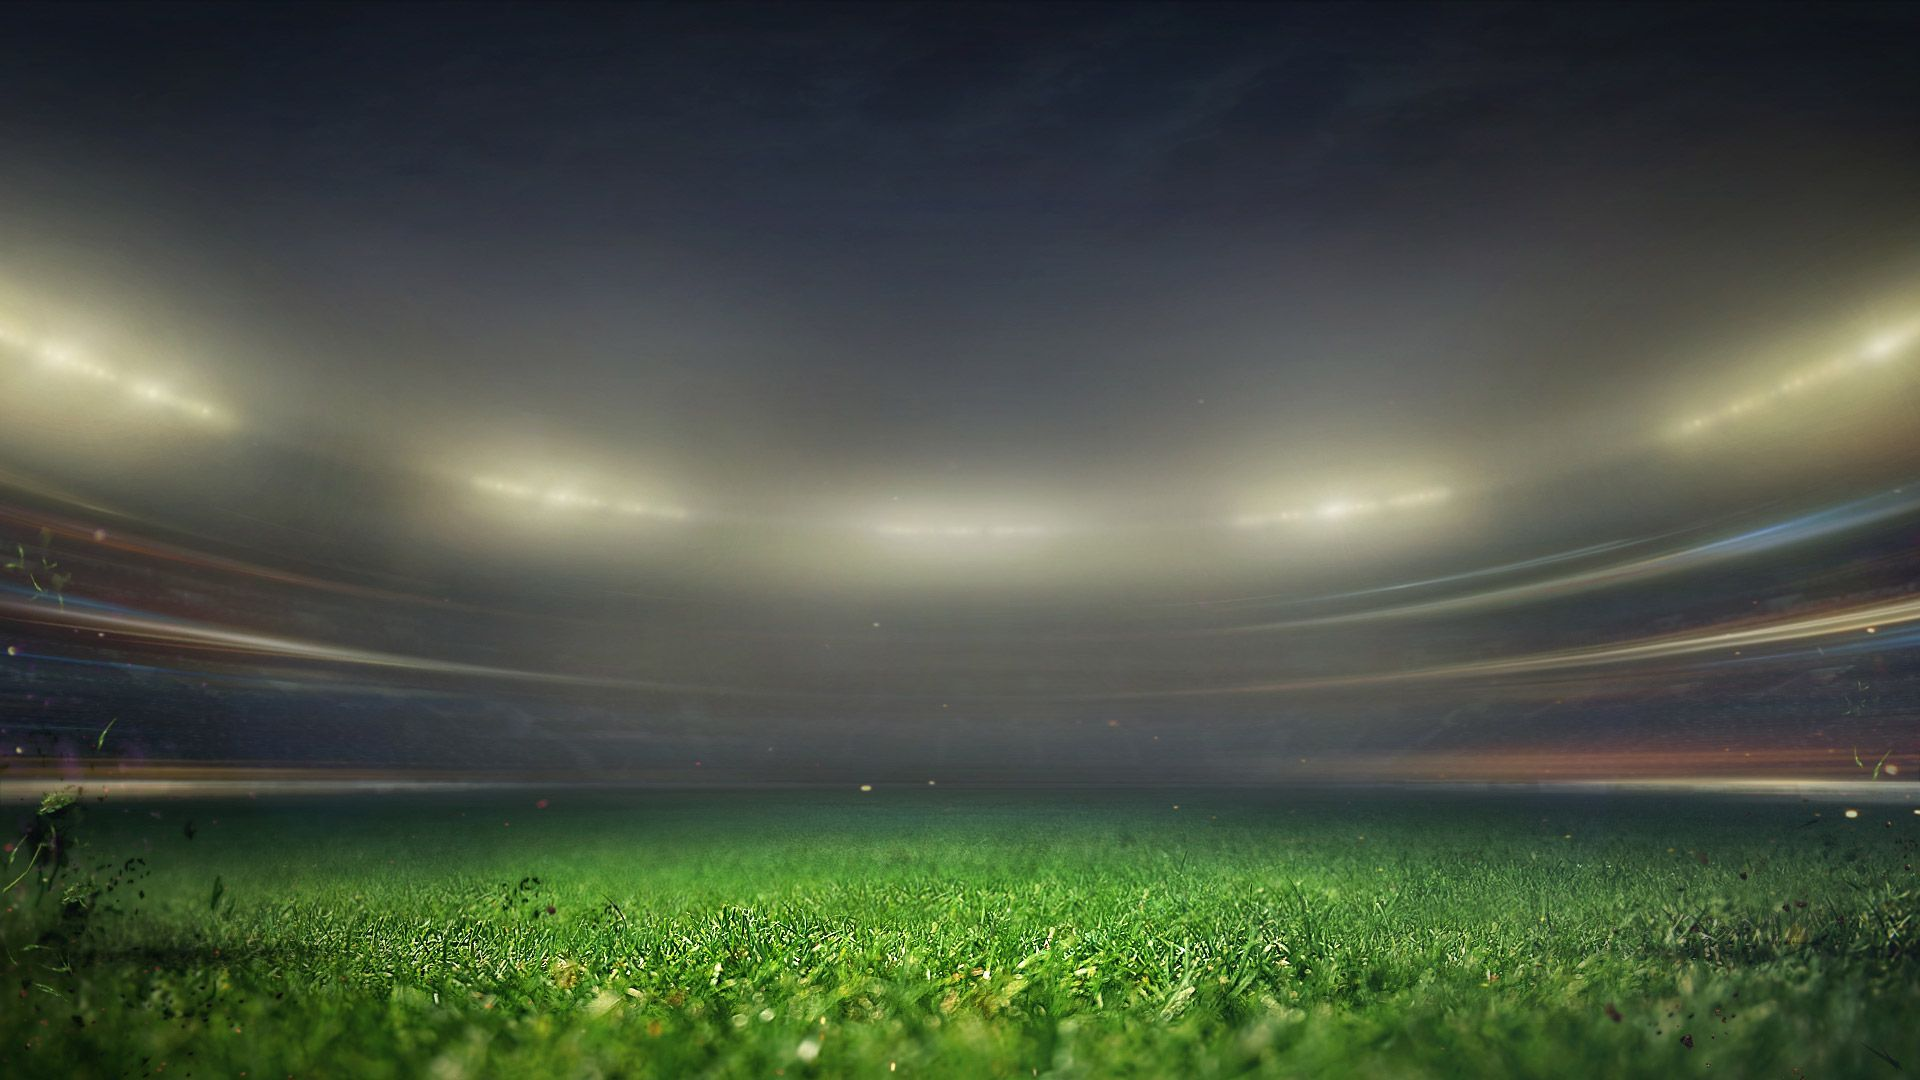 Fifa15 Homepage Video Bgnew2 Jpg 1920 1080 Background Stadium Wallpaper Fifa